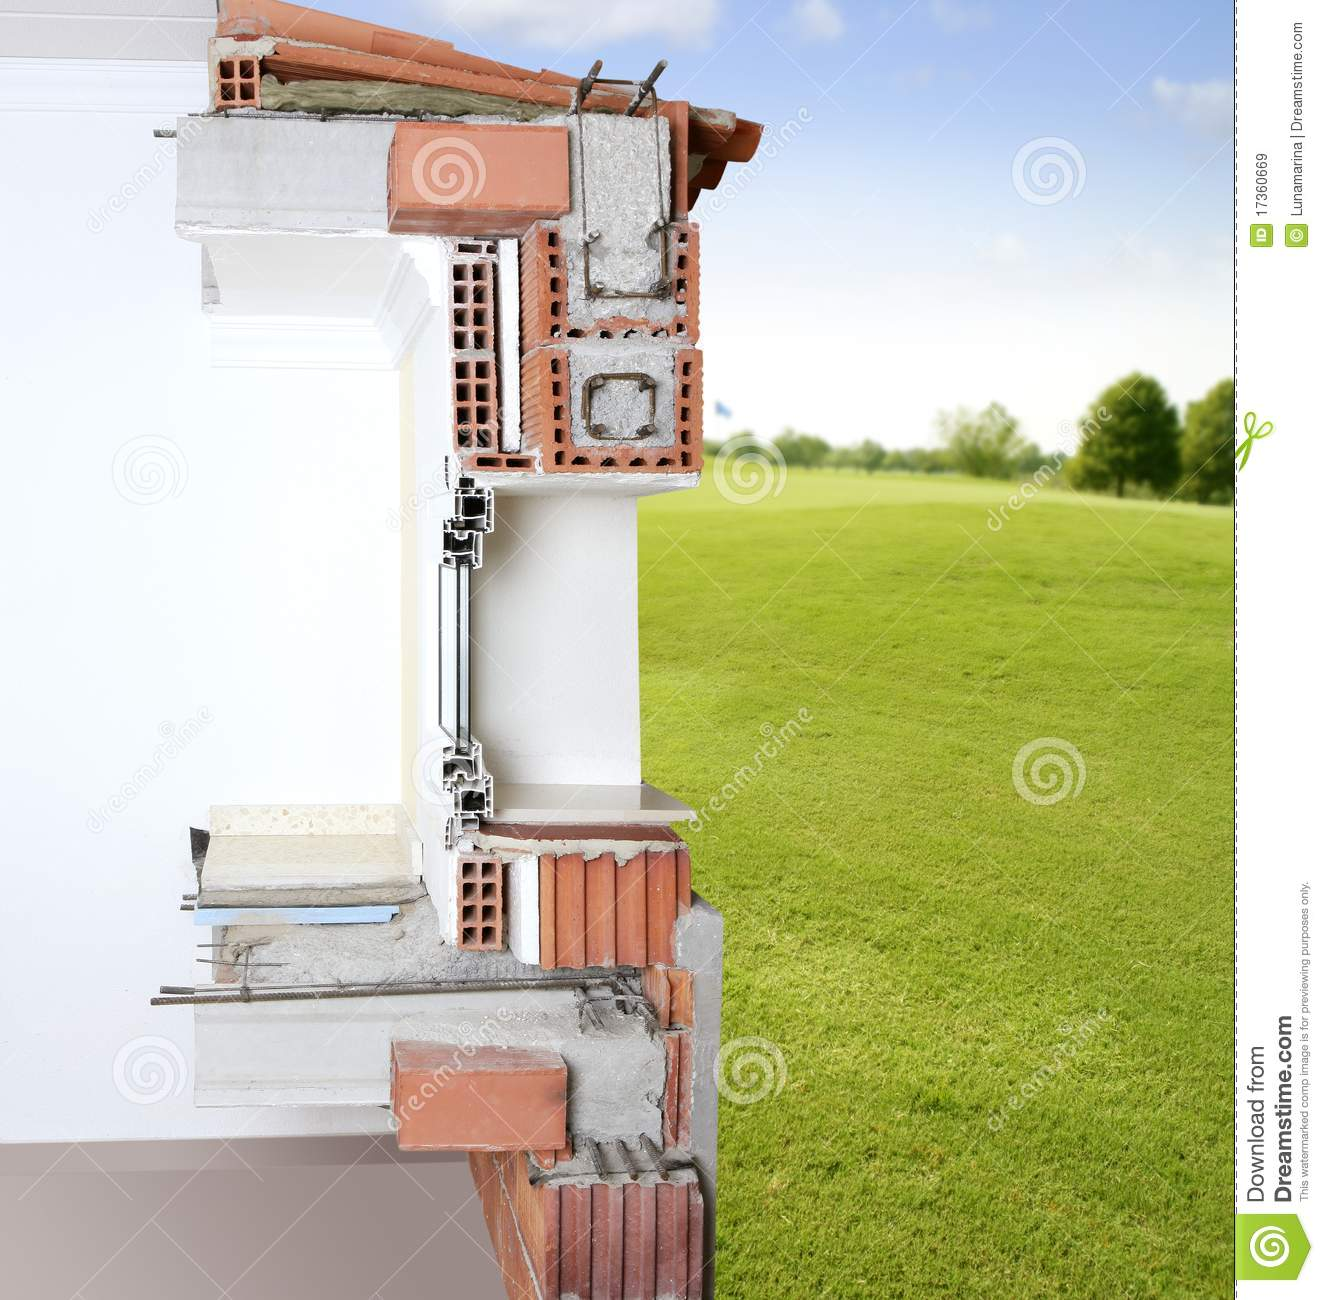 Block And Beam Floor Prices >> Facade Wall Cross Section Real Of Brick Blocks Stock Image ...